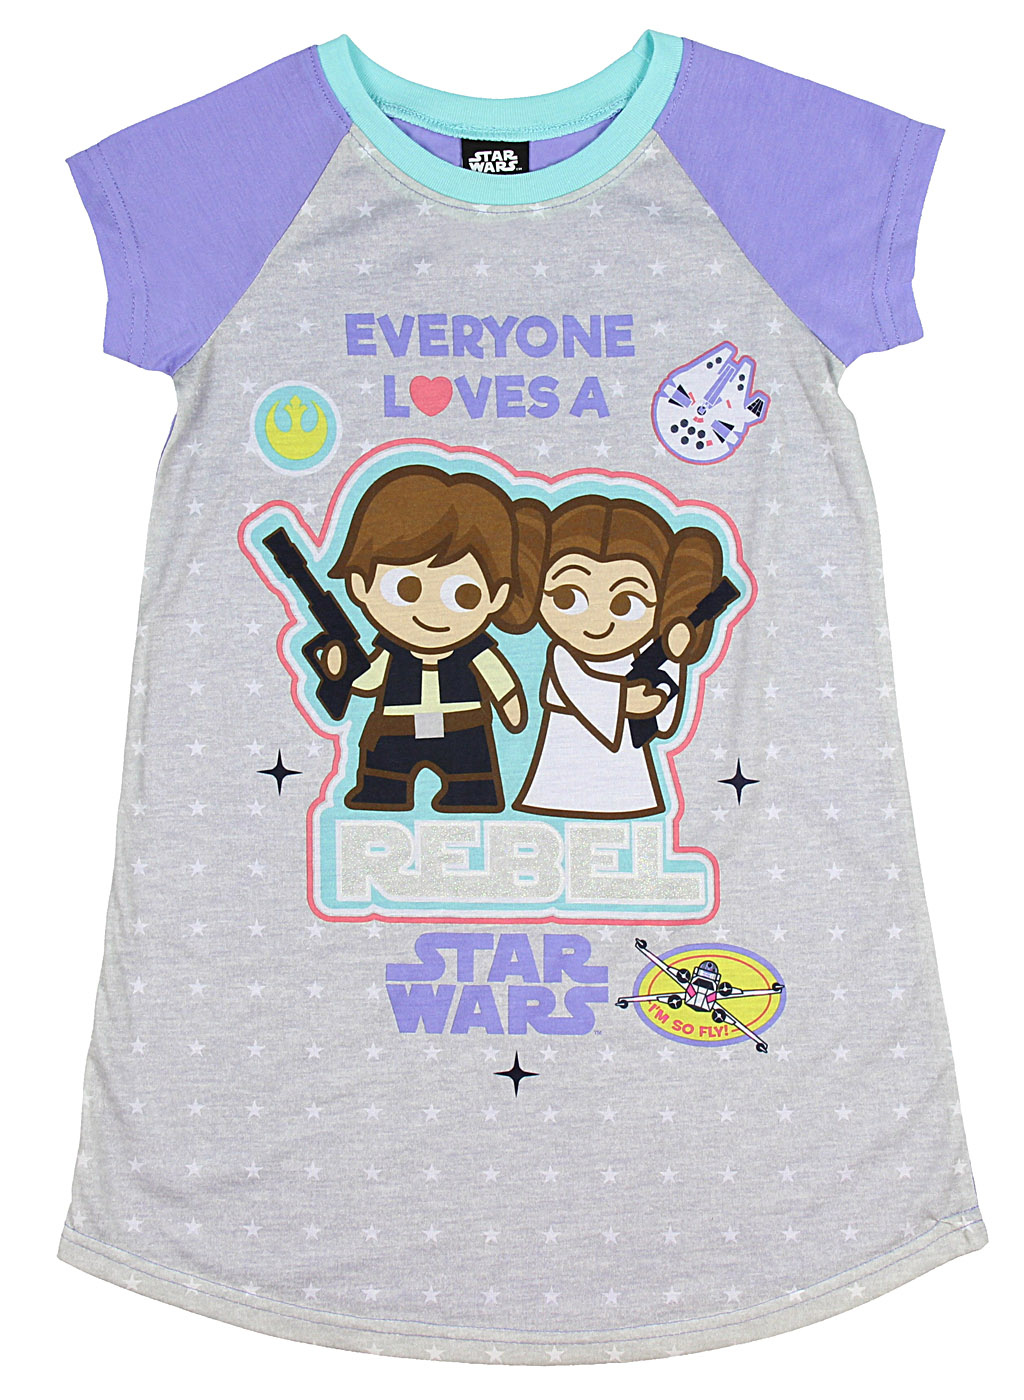 Girls' Everyone Loves A Rebel Nightgown